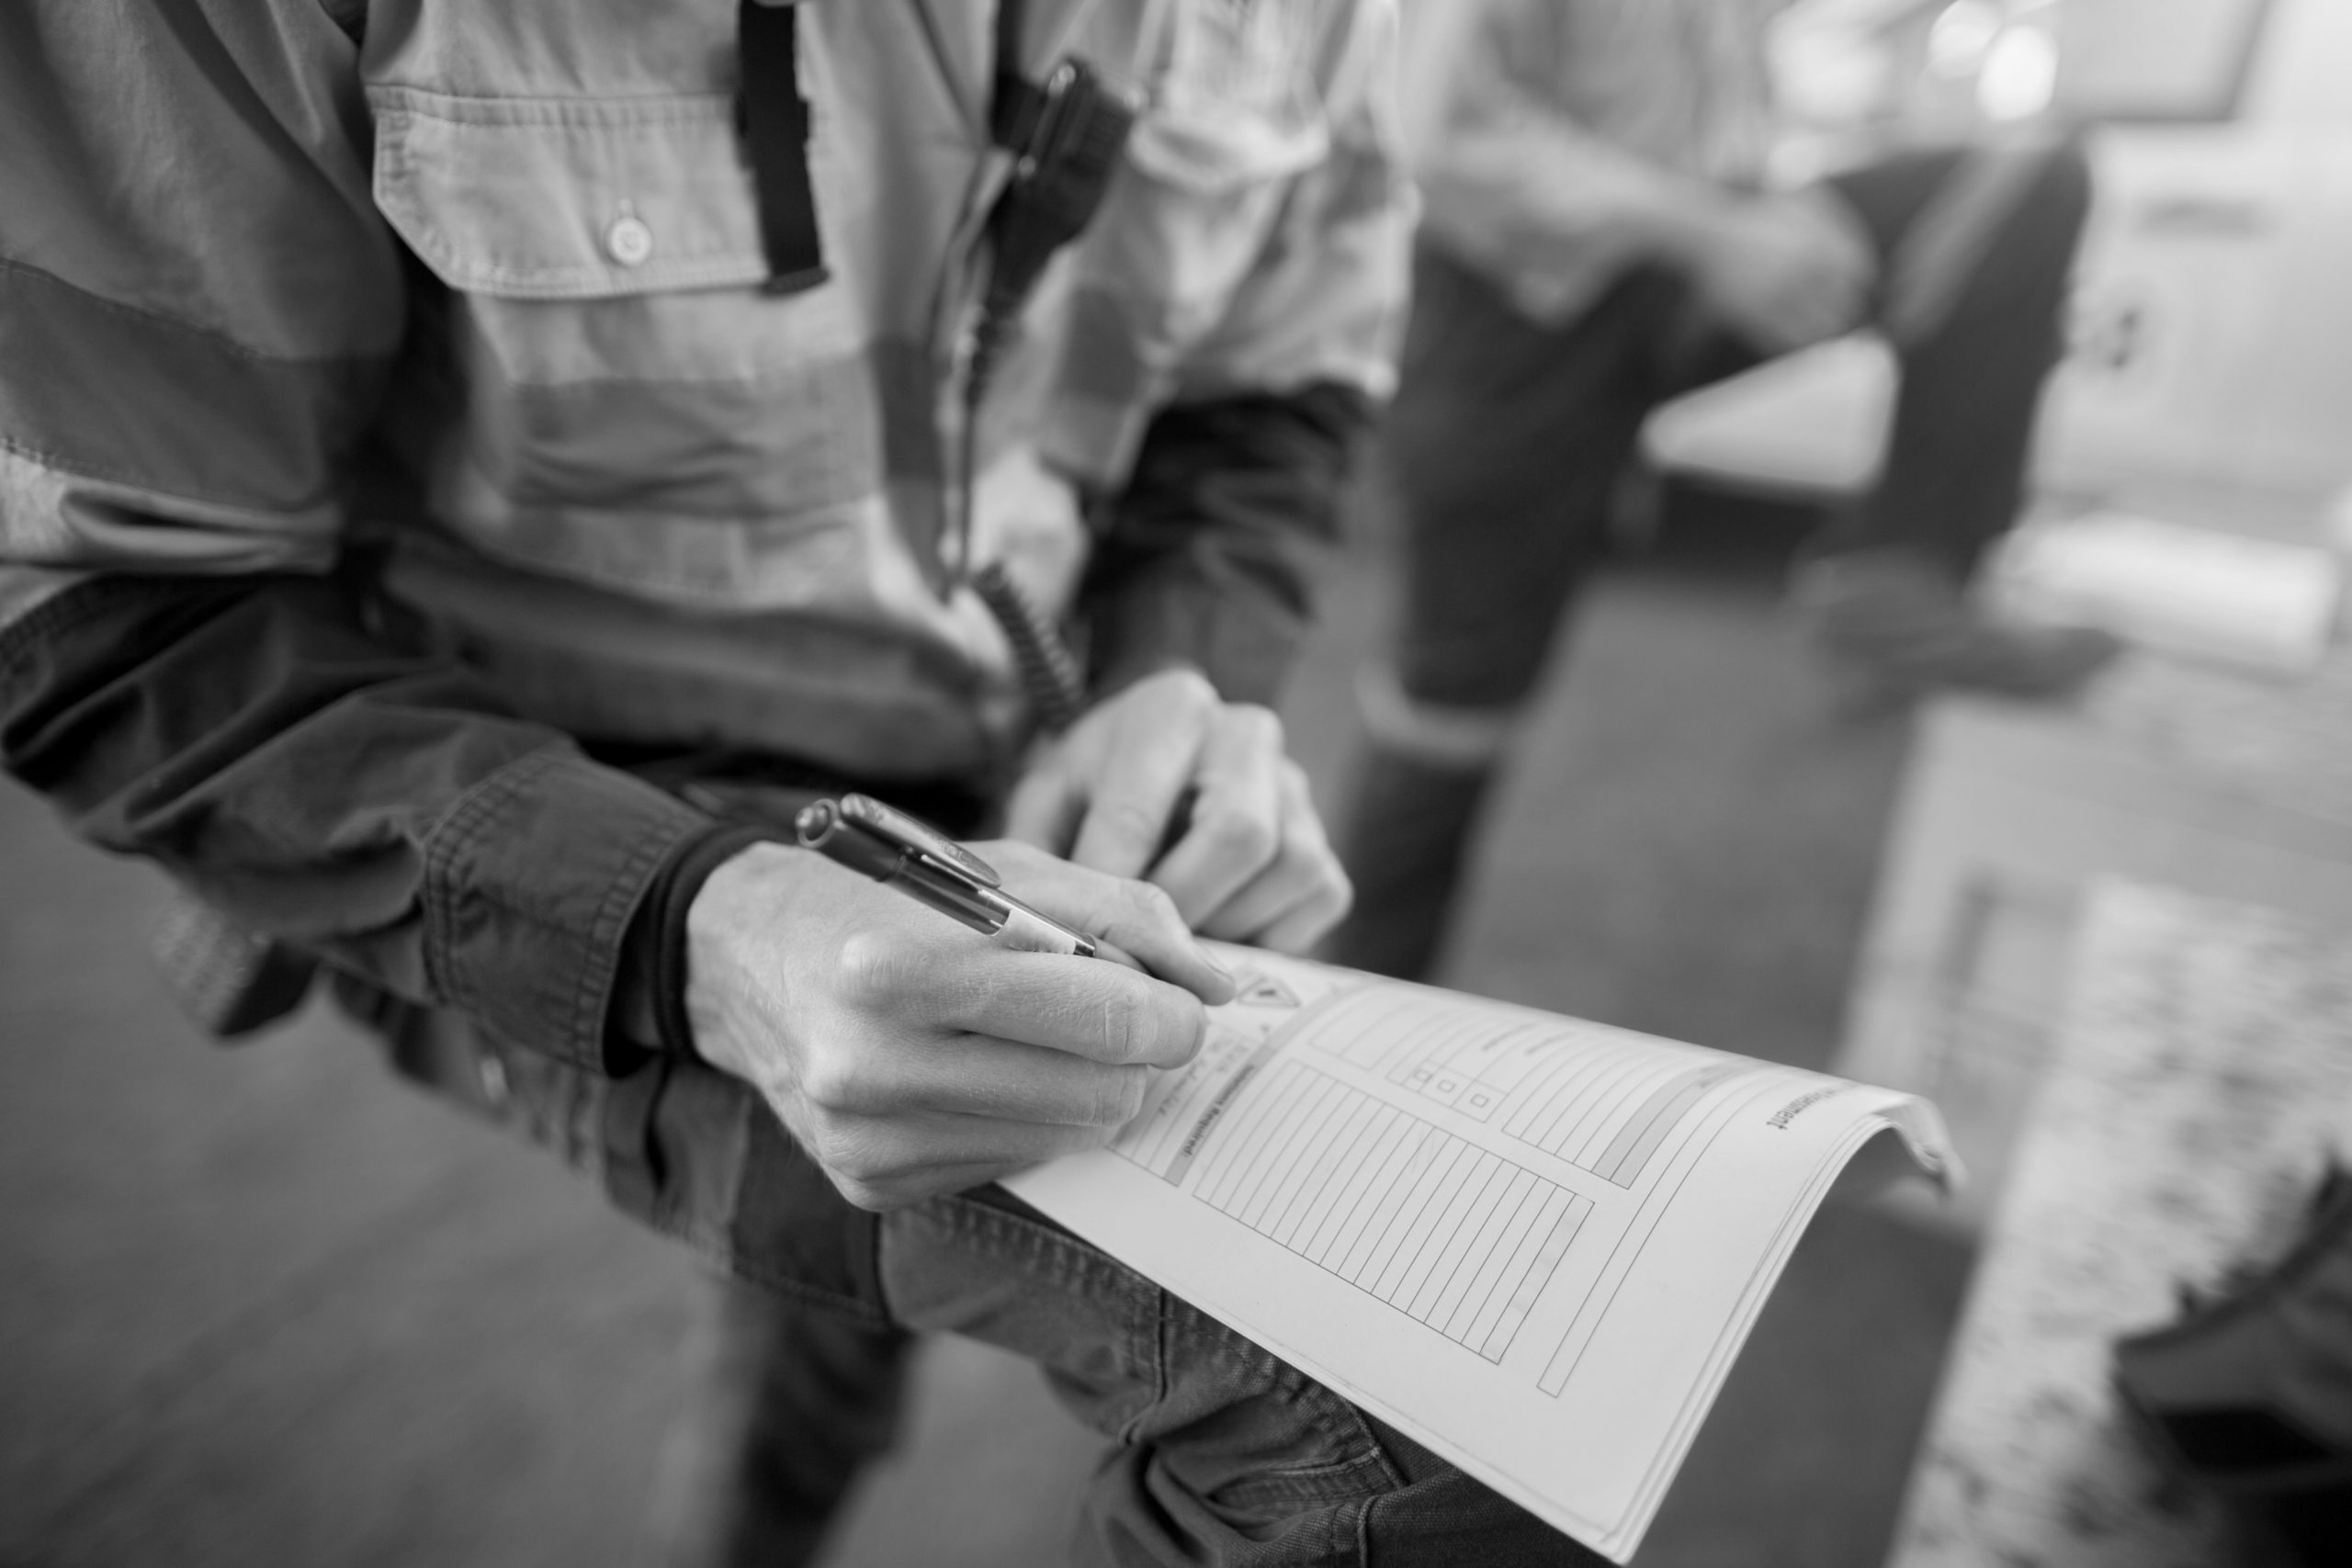 Rope access miner supervisor written checking reviewing inspecting issuer the paper work permit prior to work on construction mine site Perth, Australia